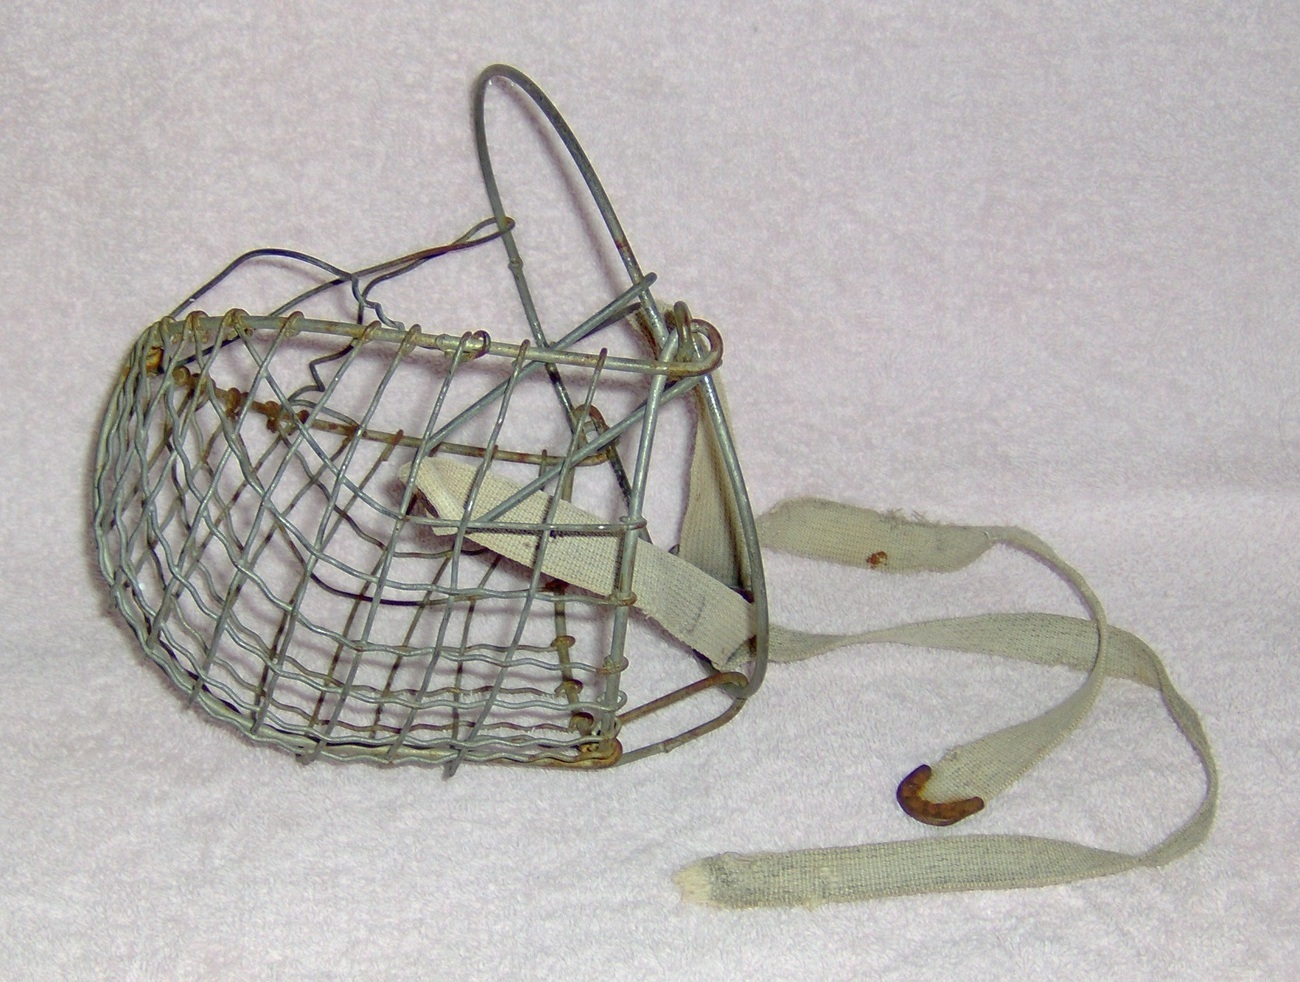 Wire Calf Muzzle Dairy Farm Equipment Vintage and similar items